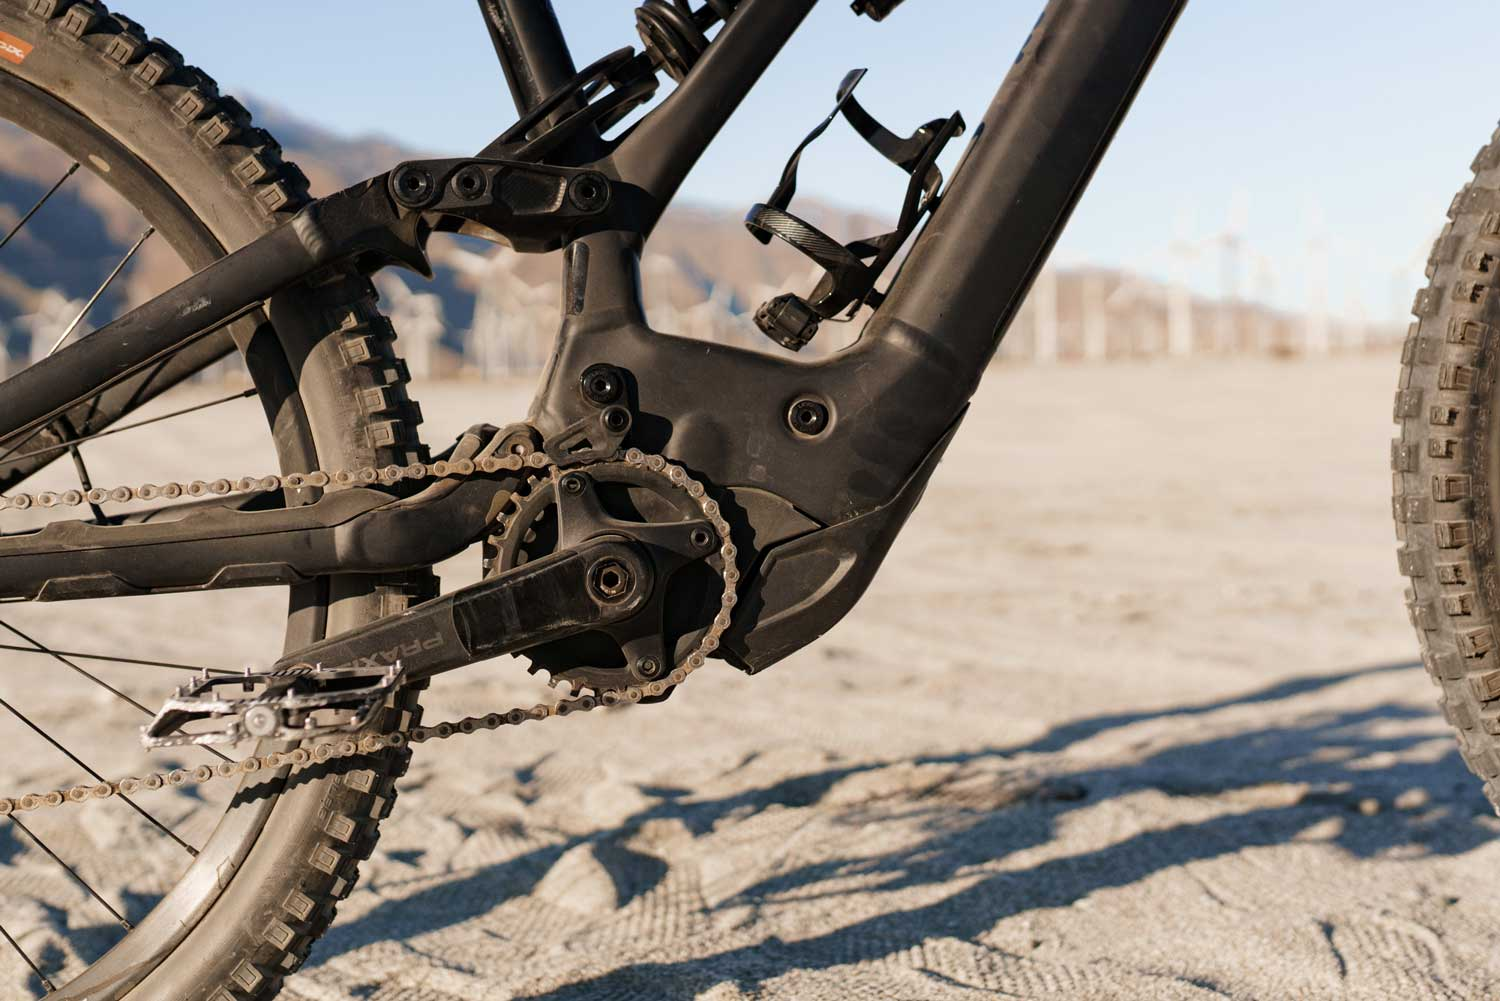 Specialized Kenevo Expert frame and chain